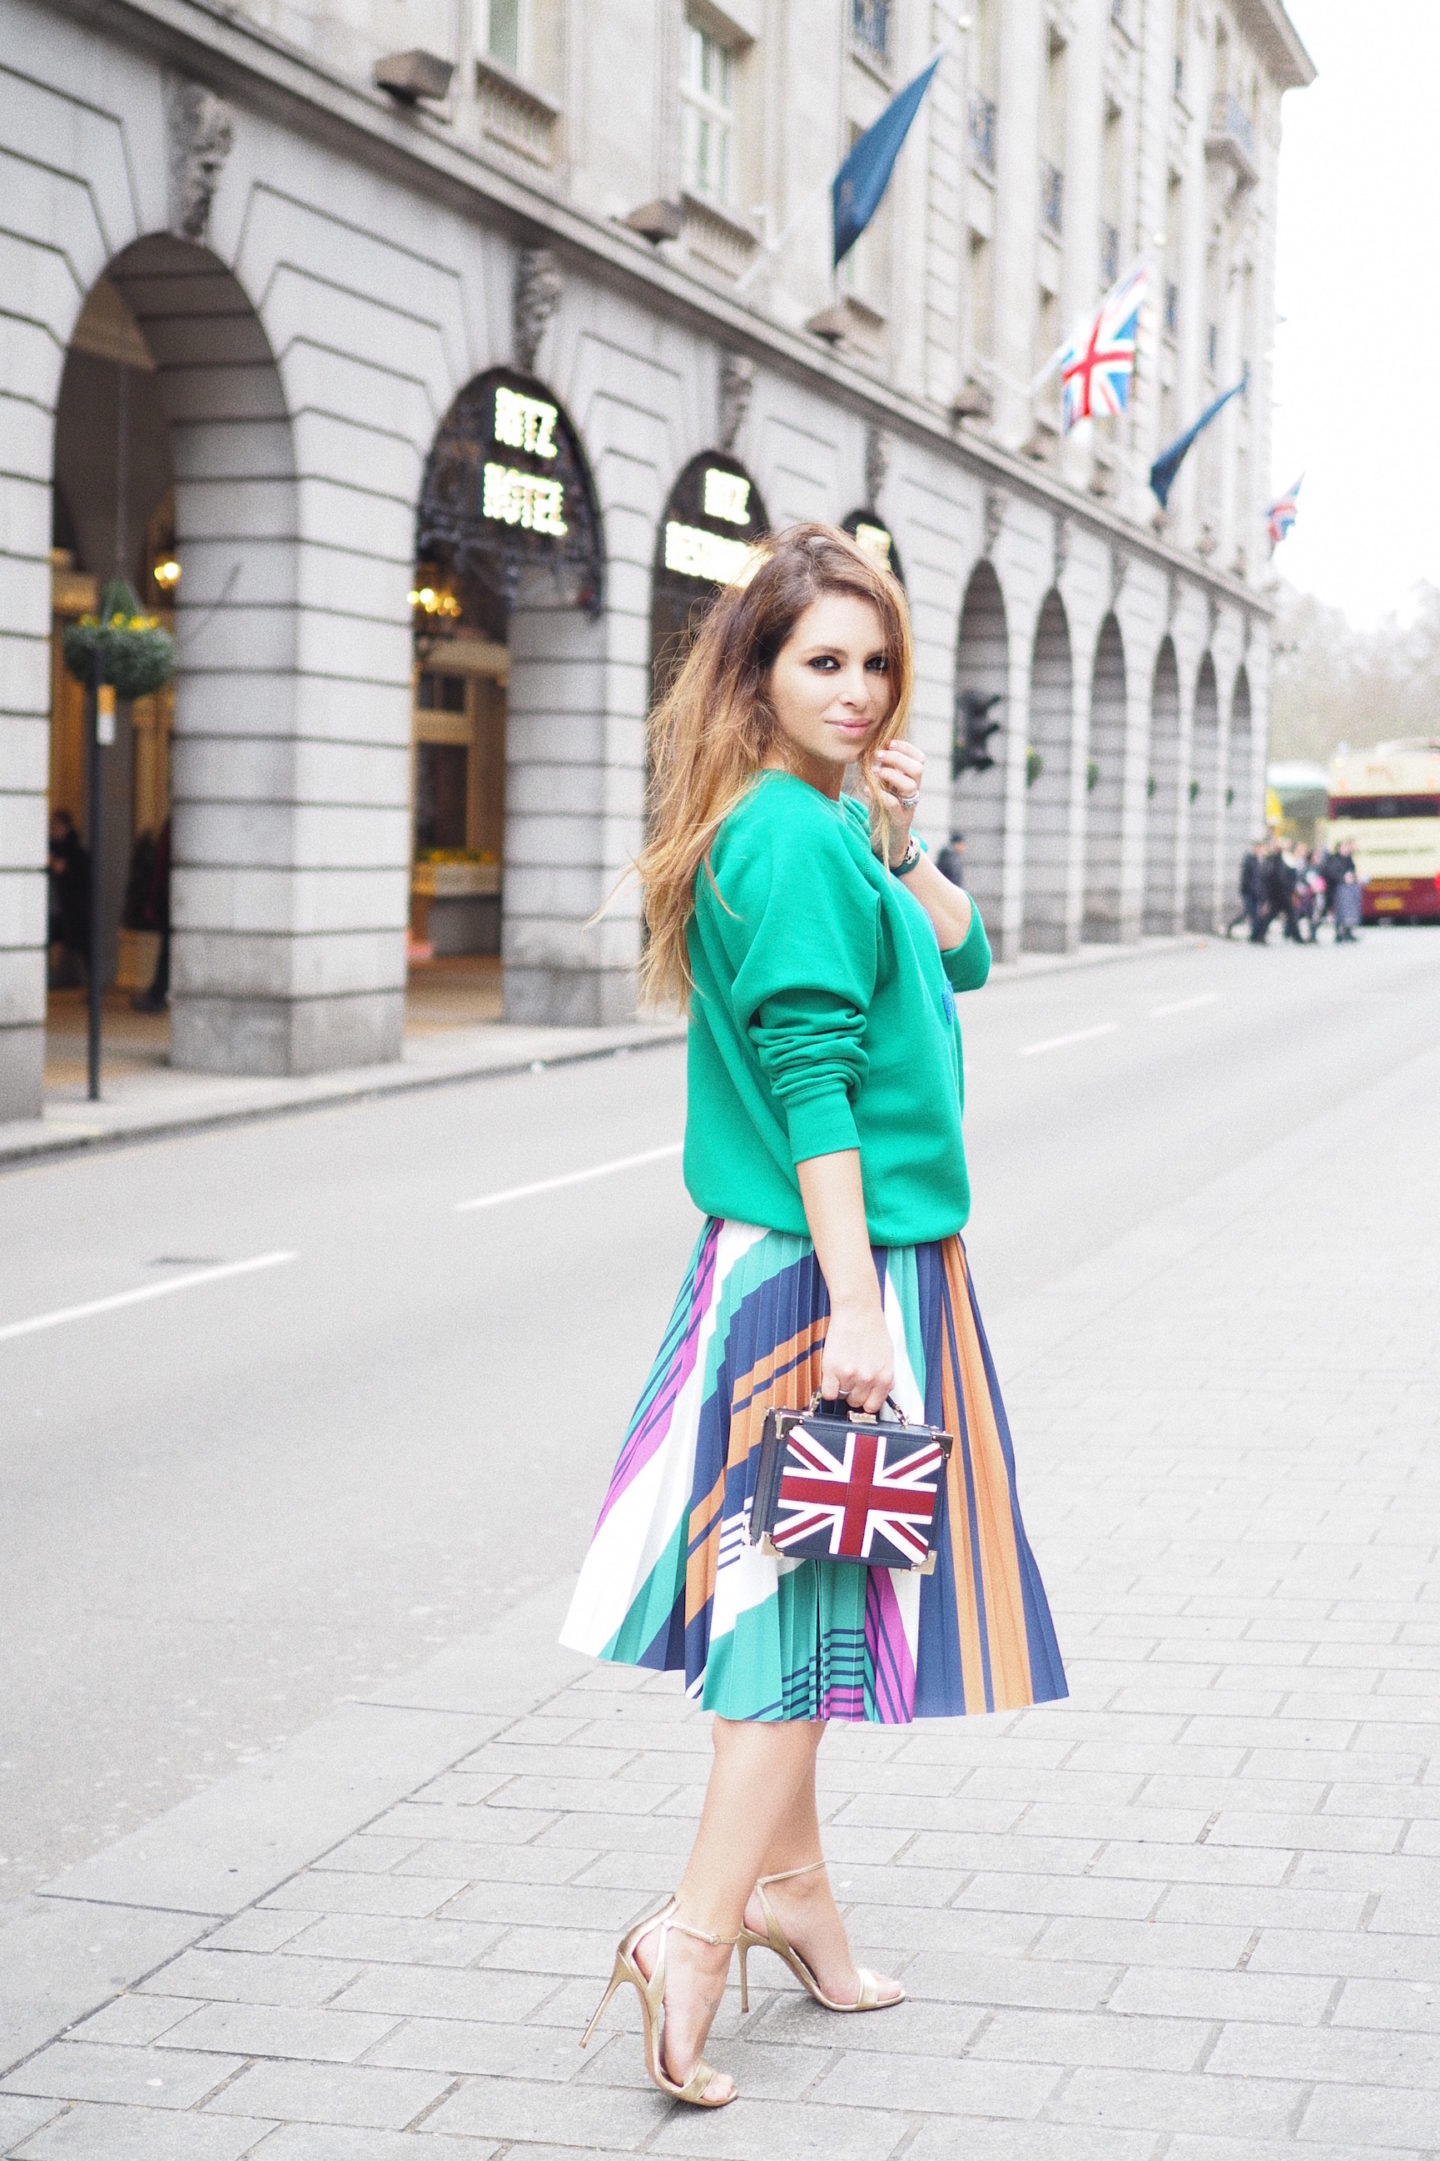 london street style union jack british fashion